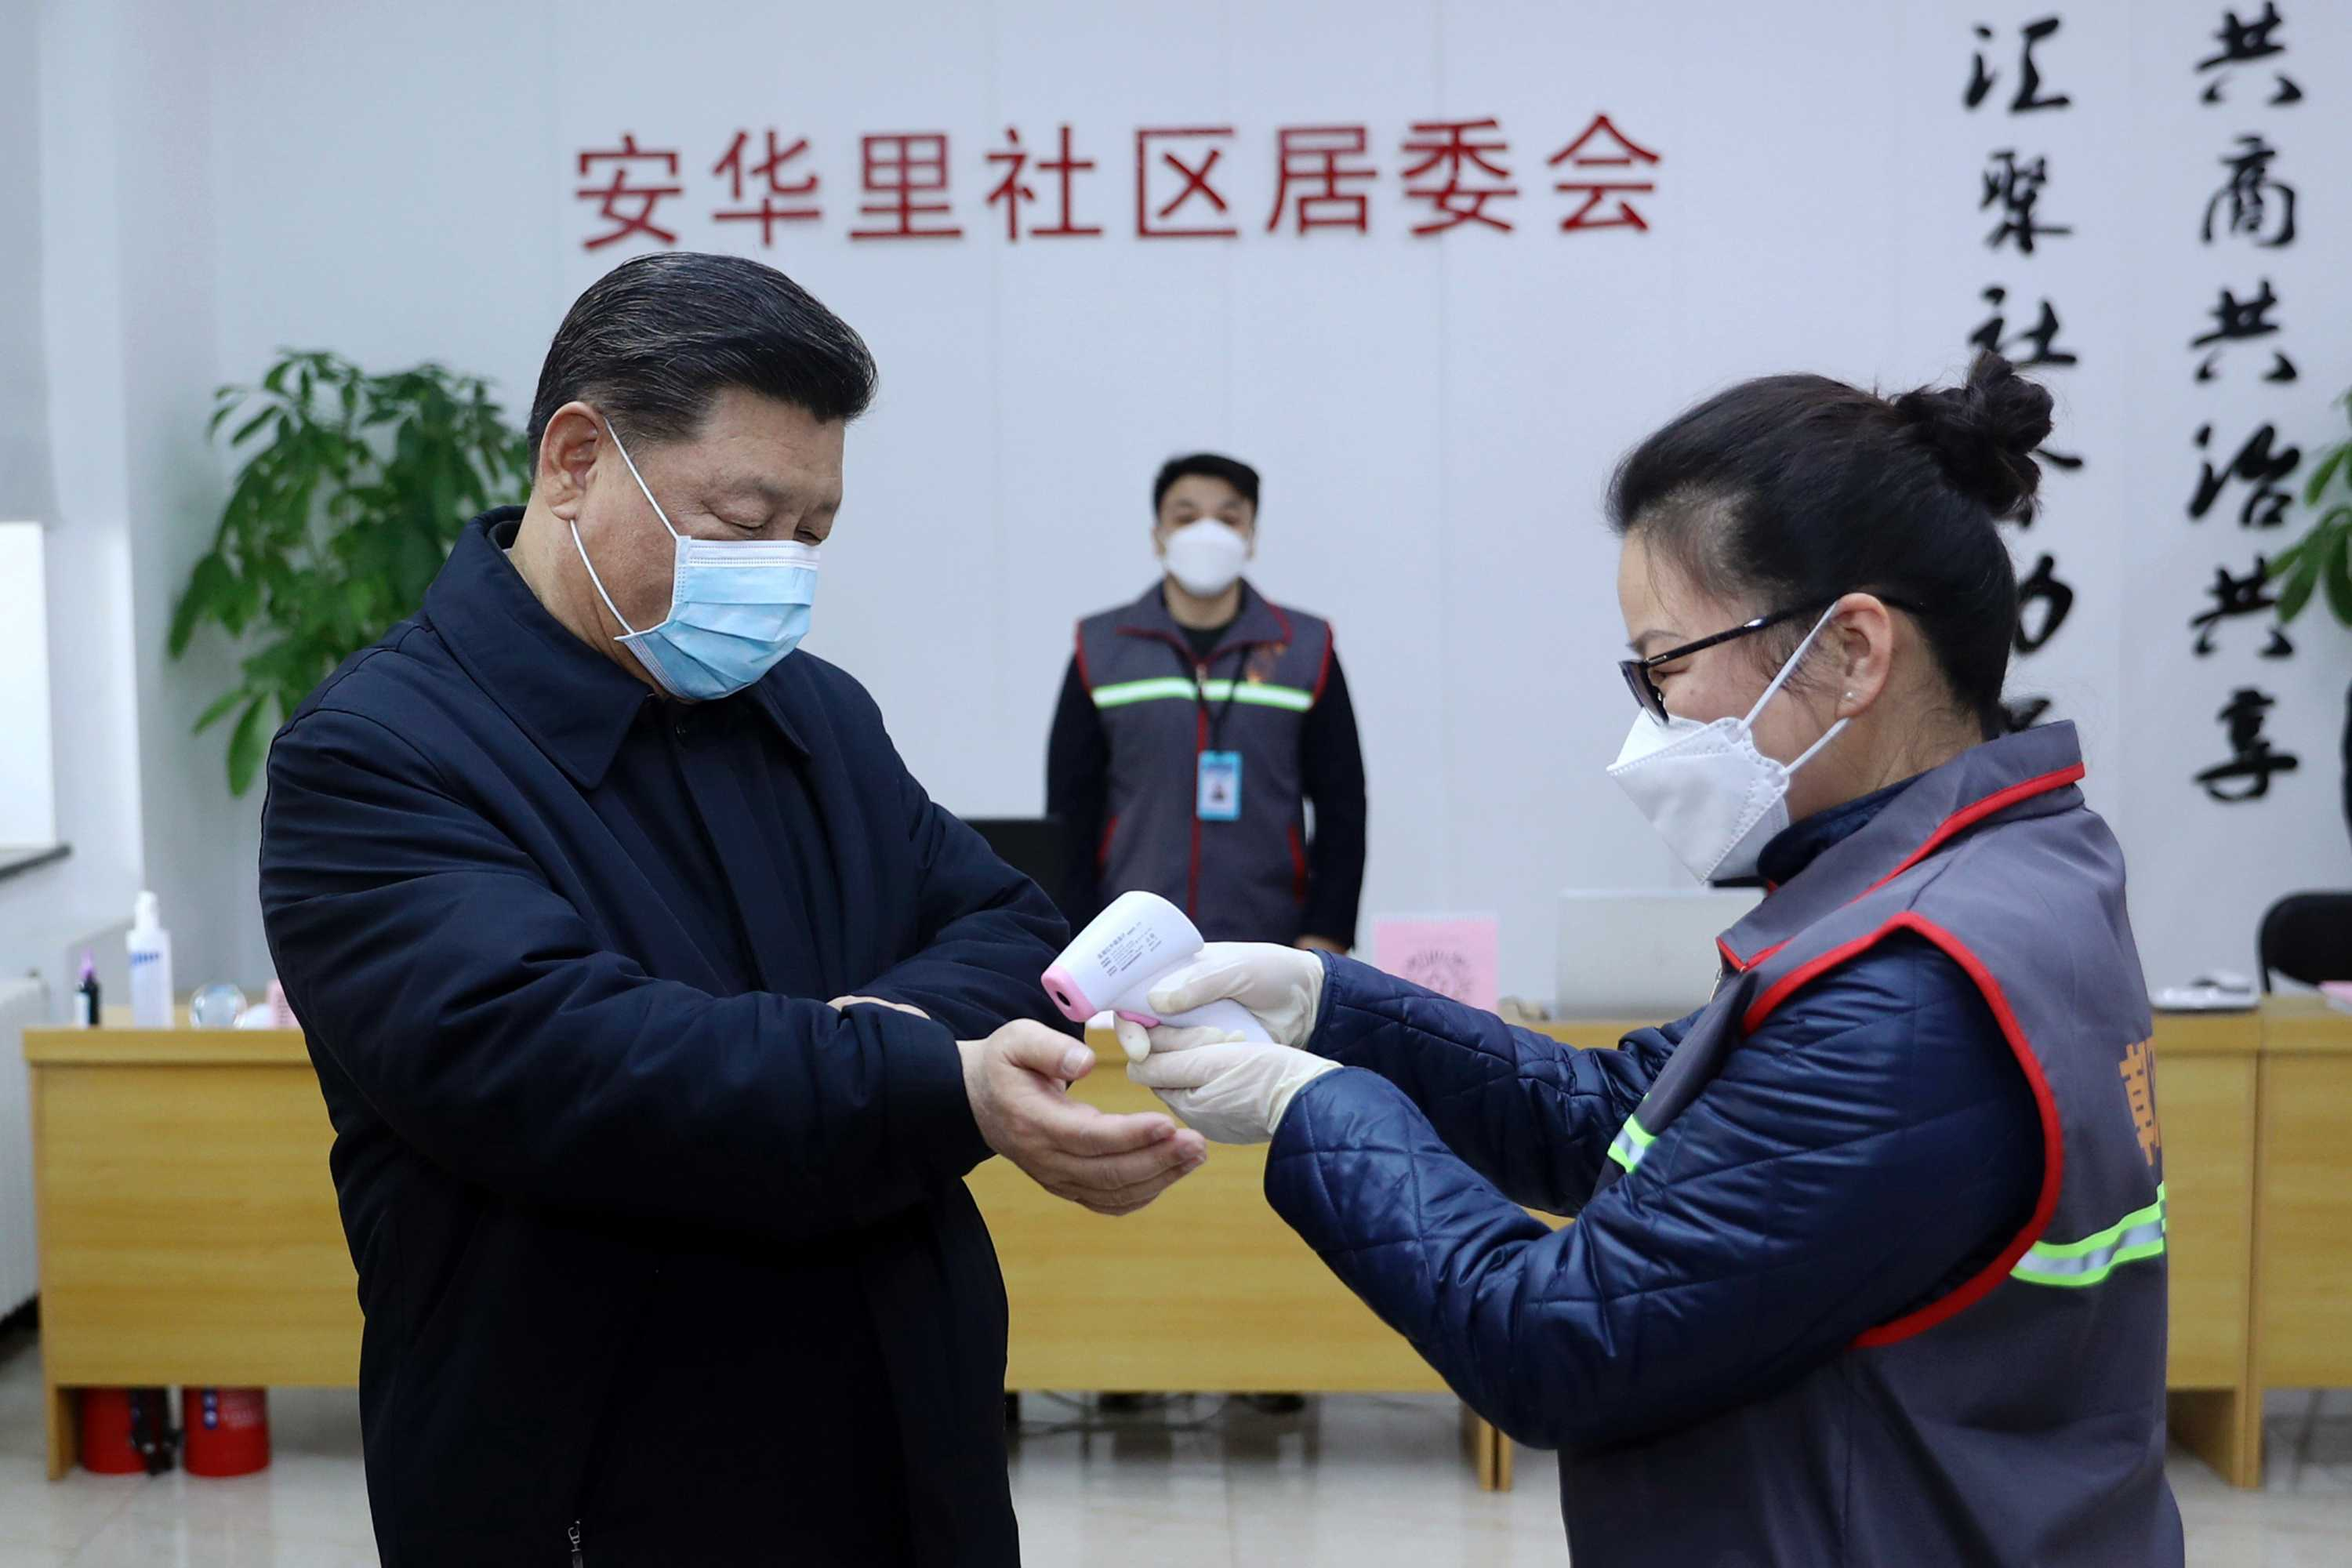 Xi Jinping wearing a face mask and getting his temperature checked as he visits  community health centre in Beijing.